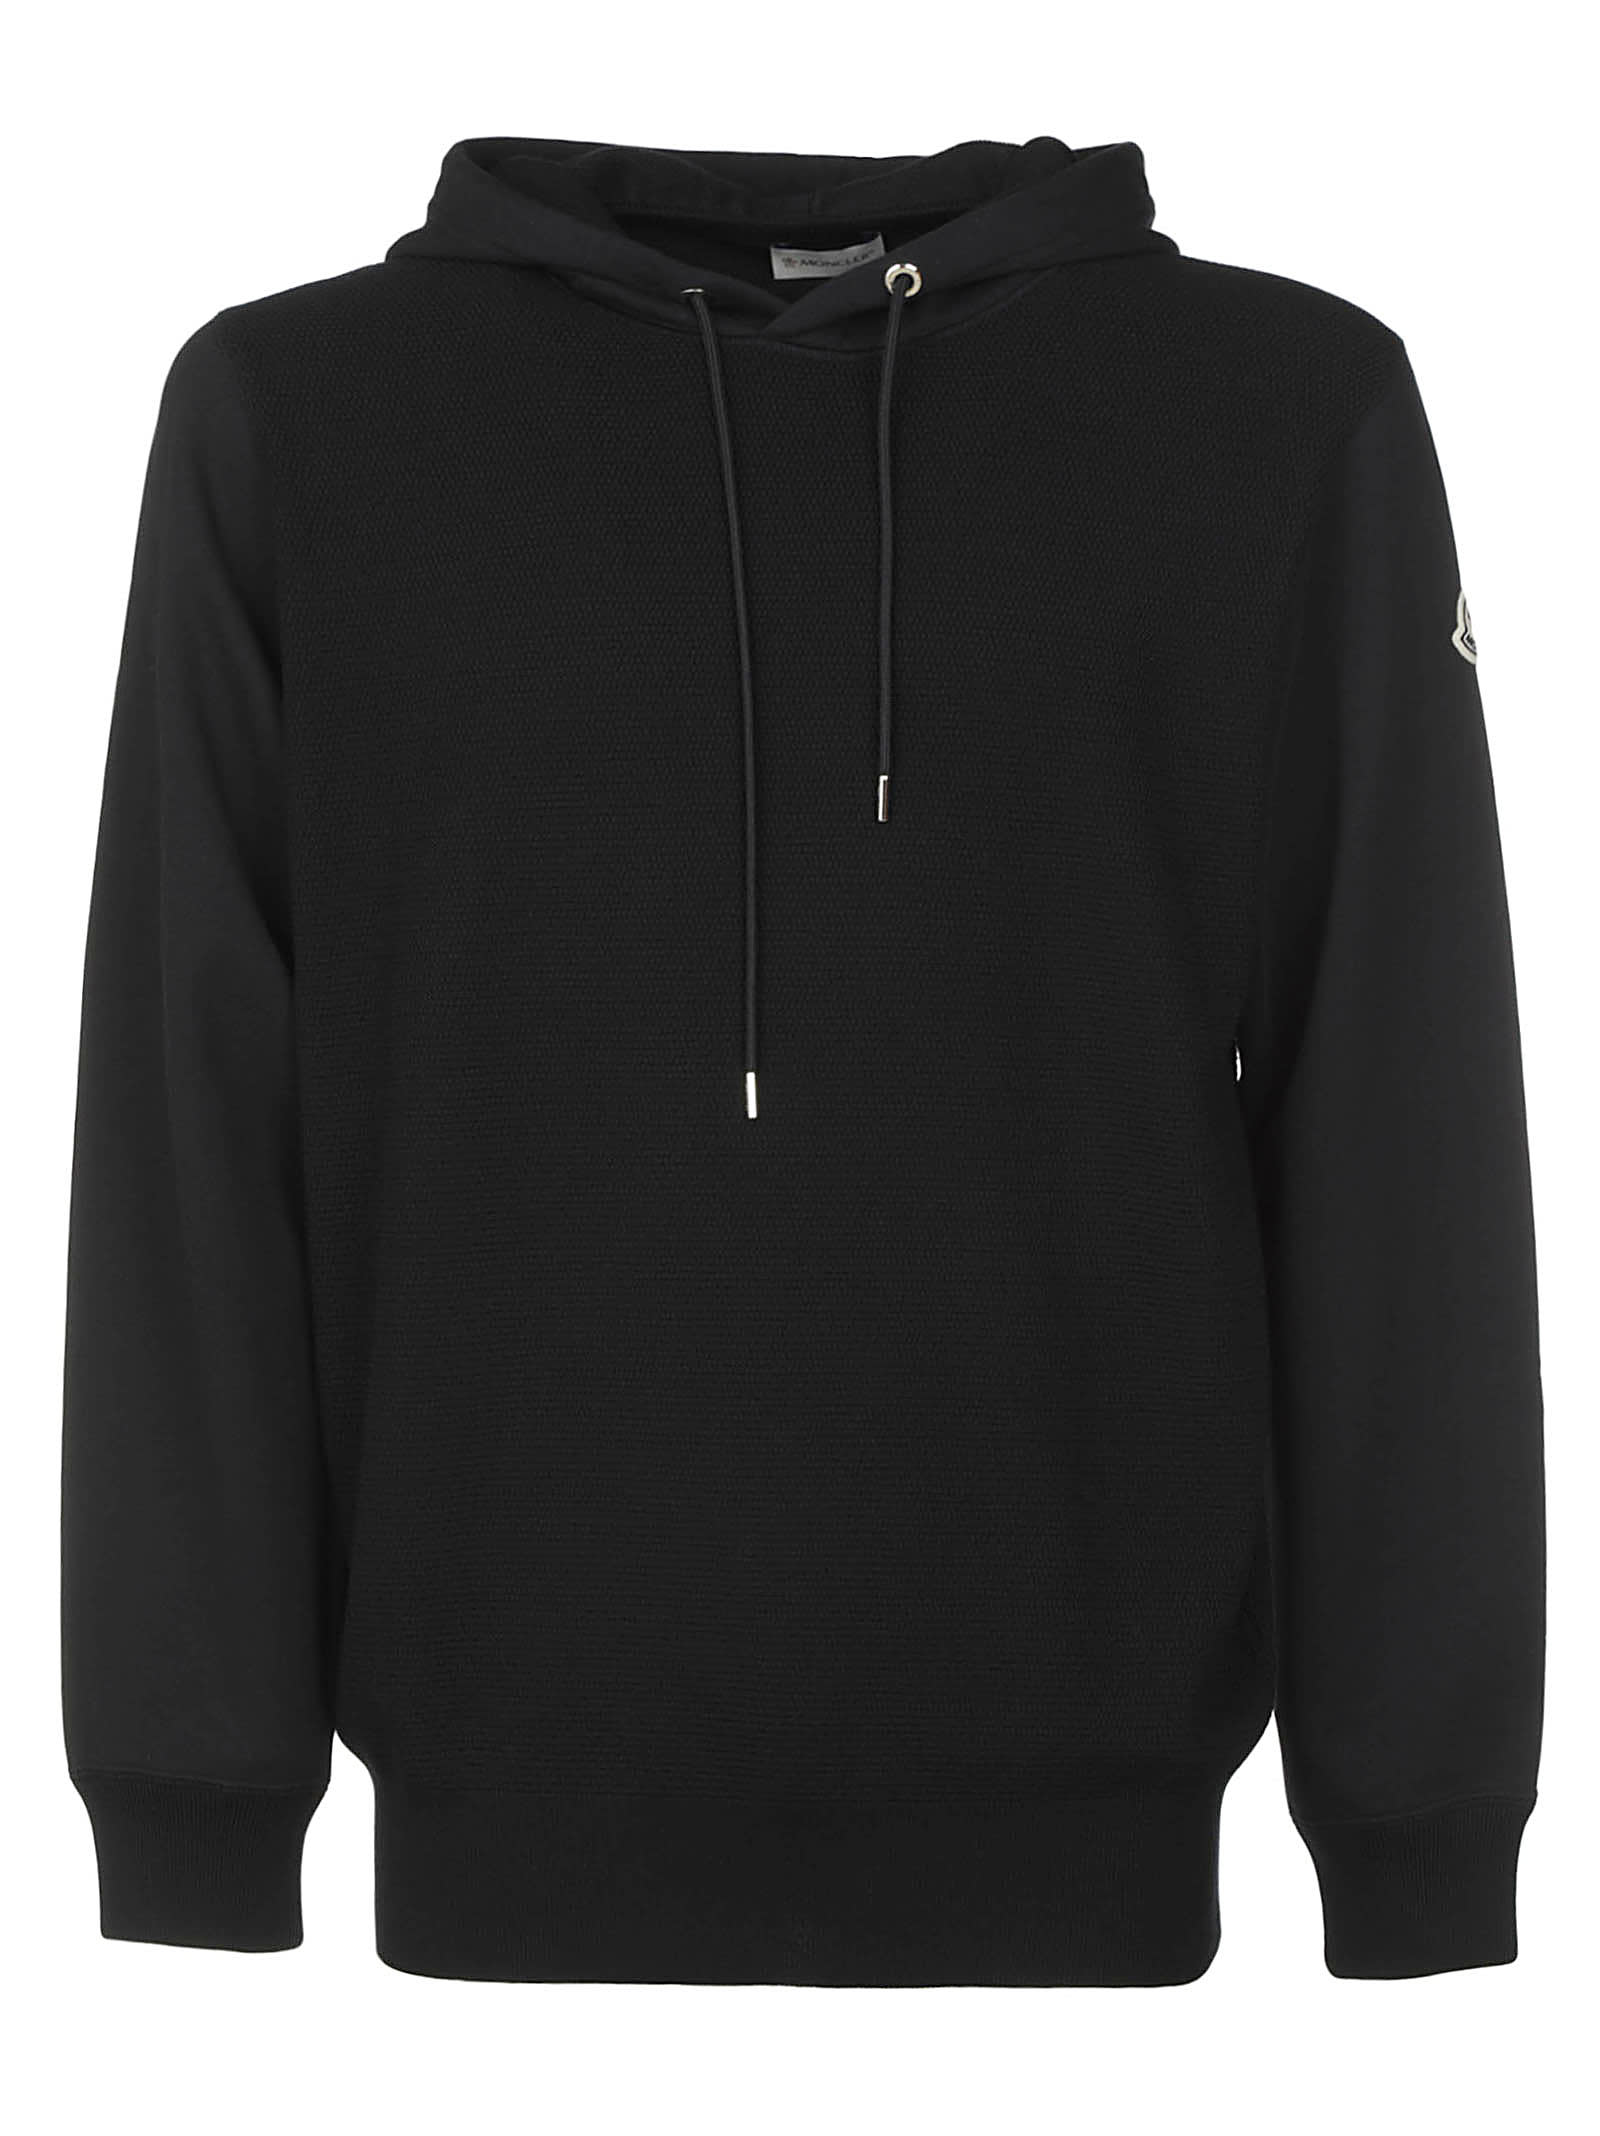 Moncler LOGO PATCHED HOODED SWEATSHIRT